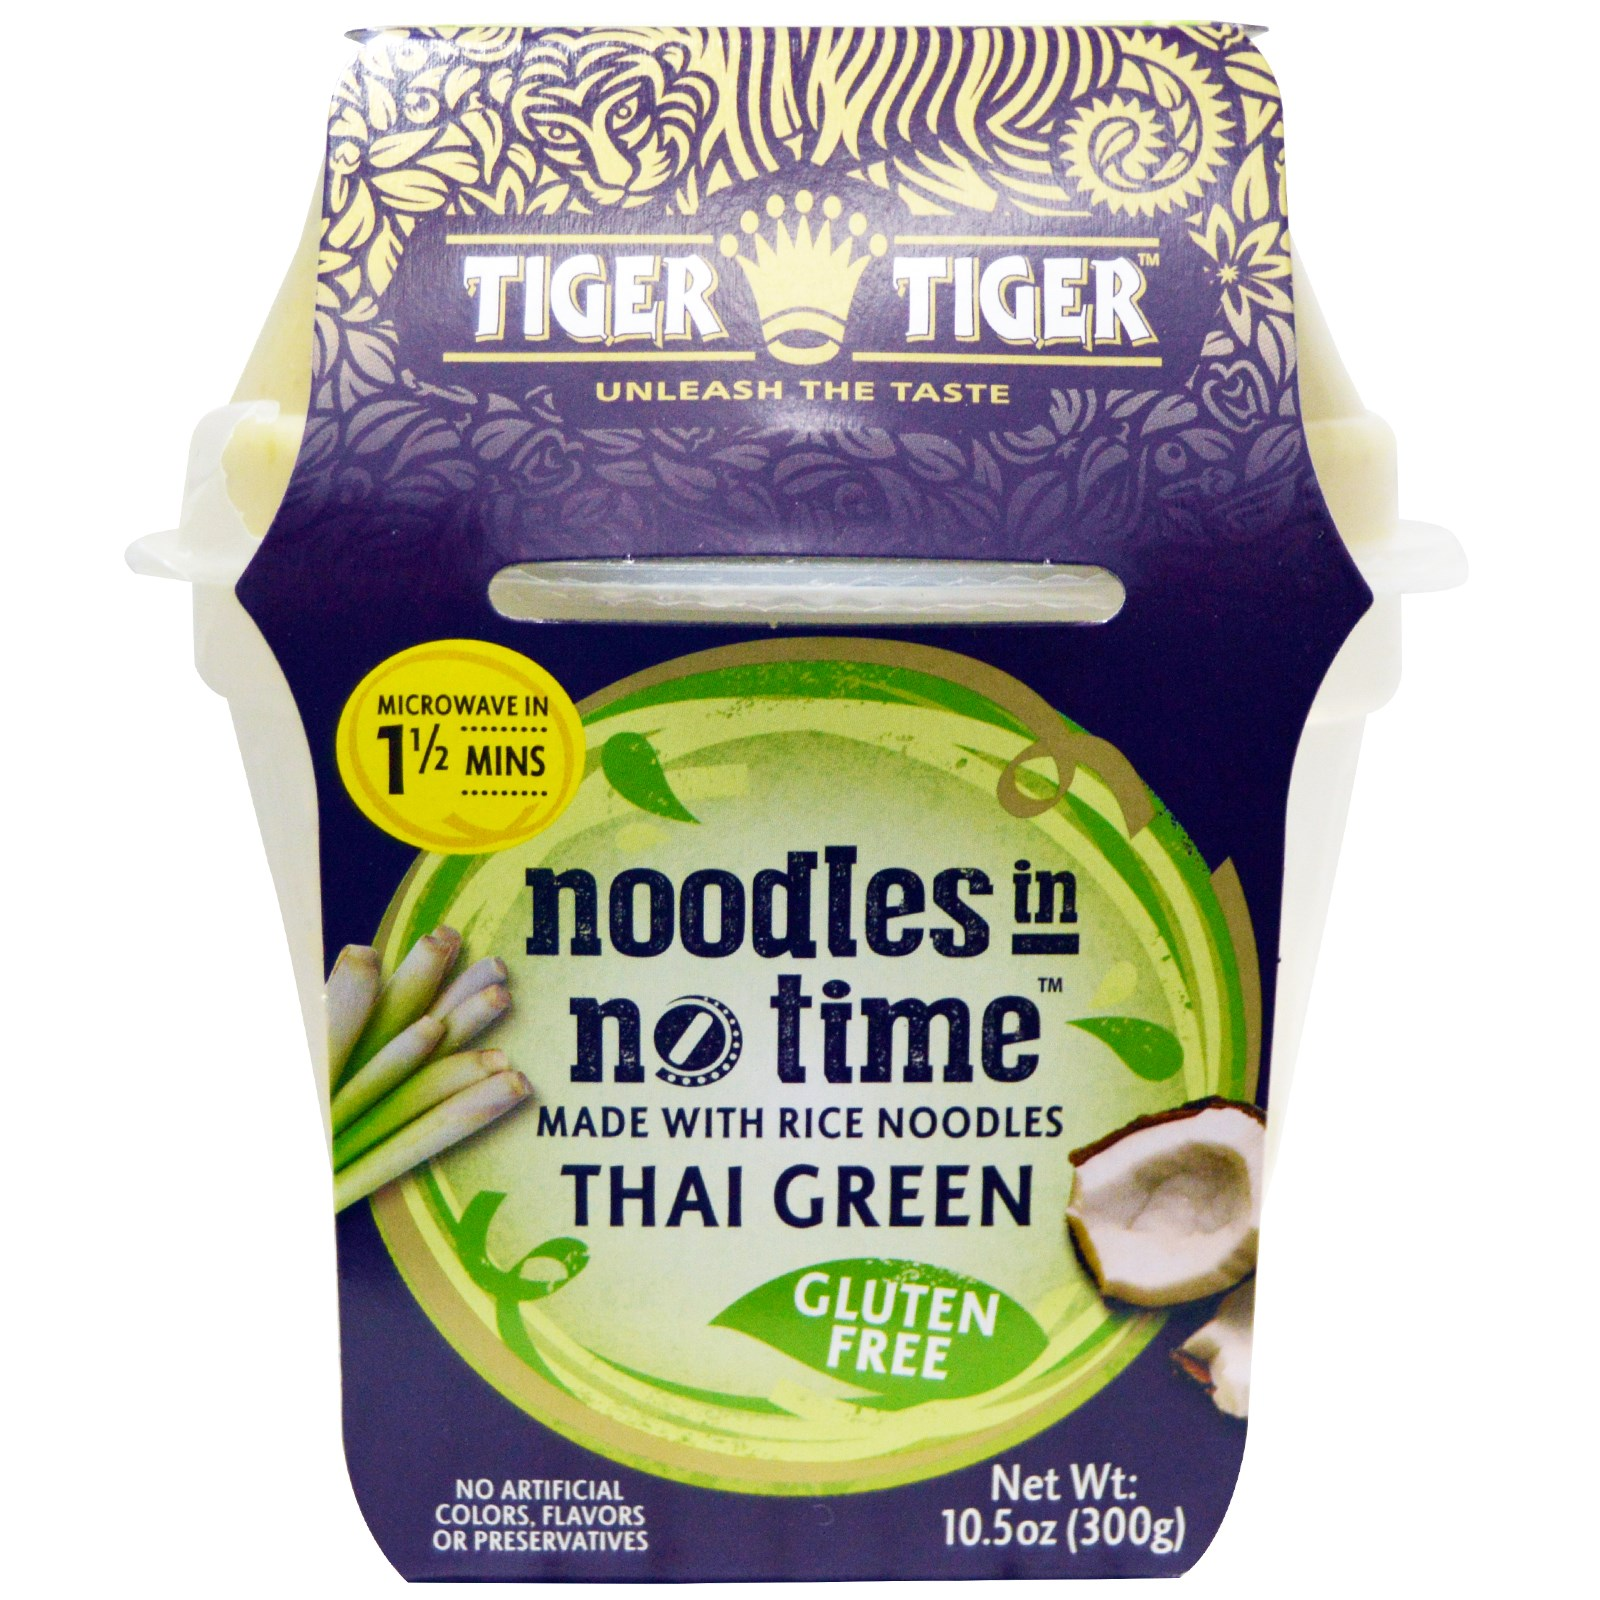 official photos 61b4d 49336 Tiger Tiger, Noodles in No Time, Rice Noodles with Thai Green Curry, 10.5  oz (300 g) (Discontinued Item)